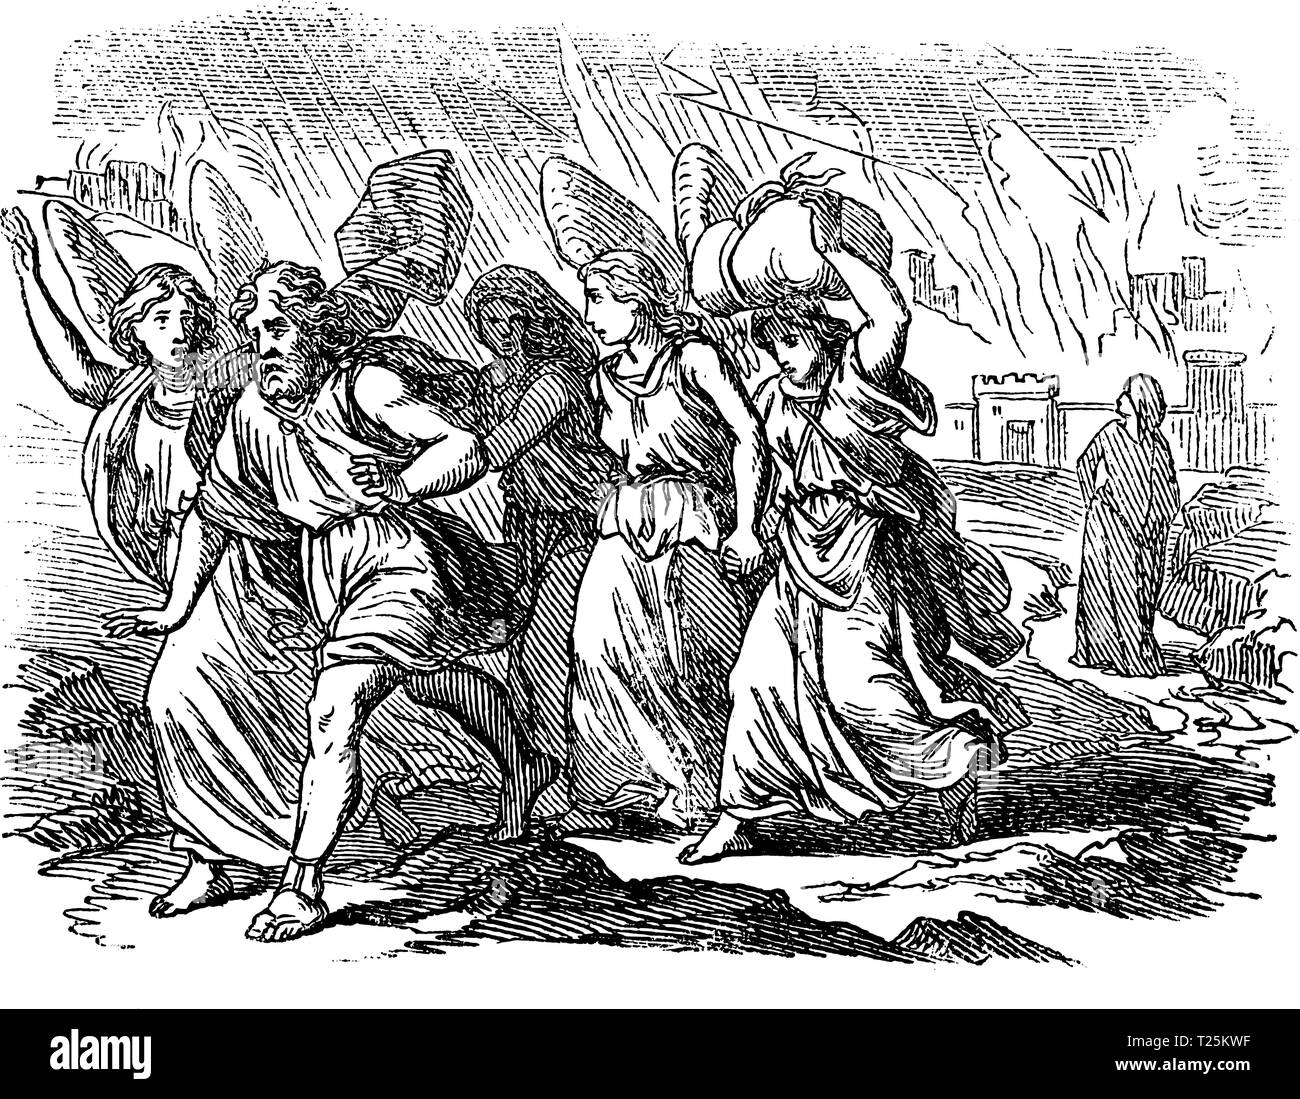 Vintage antique illustration and line drawing or engraving of biblical story about destruction of cities Sodom and Gomorrah. From Biblische Geschichte des alten und neuen Testaments, Germany 1859.Genesis 18-19. Stock Vector